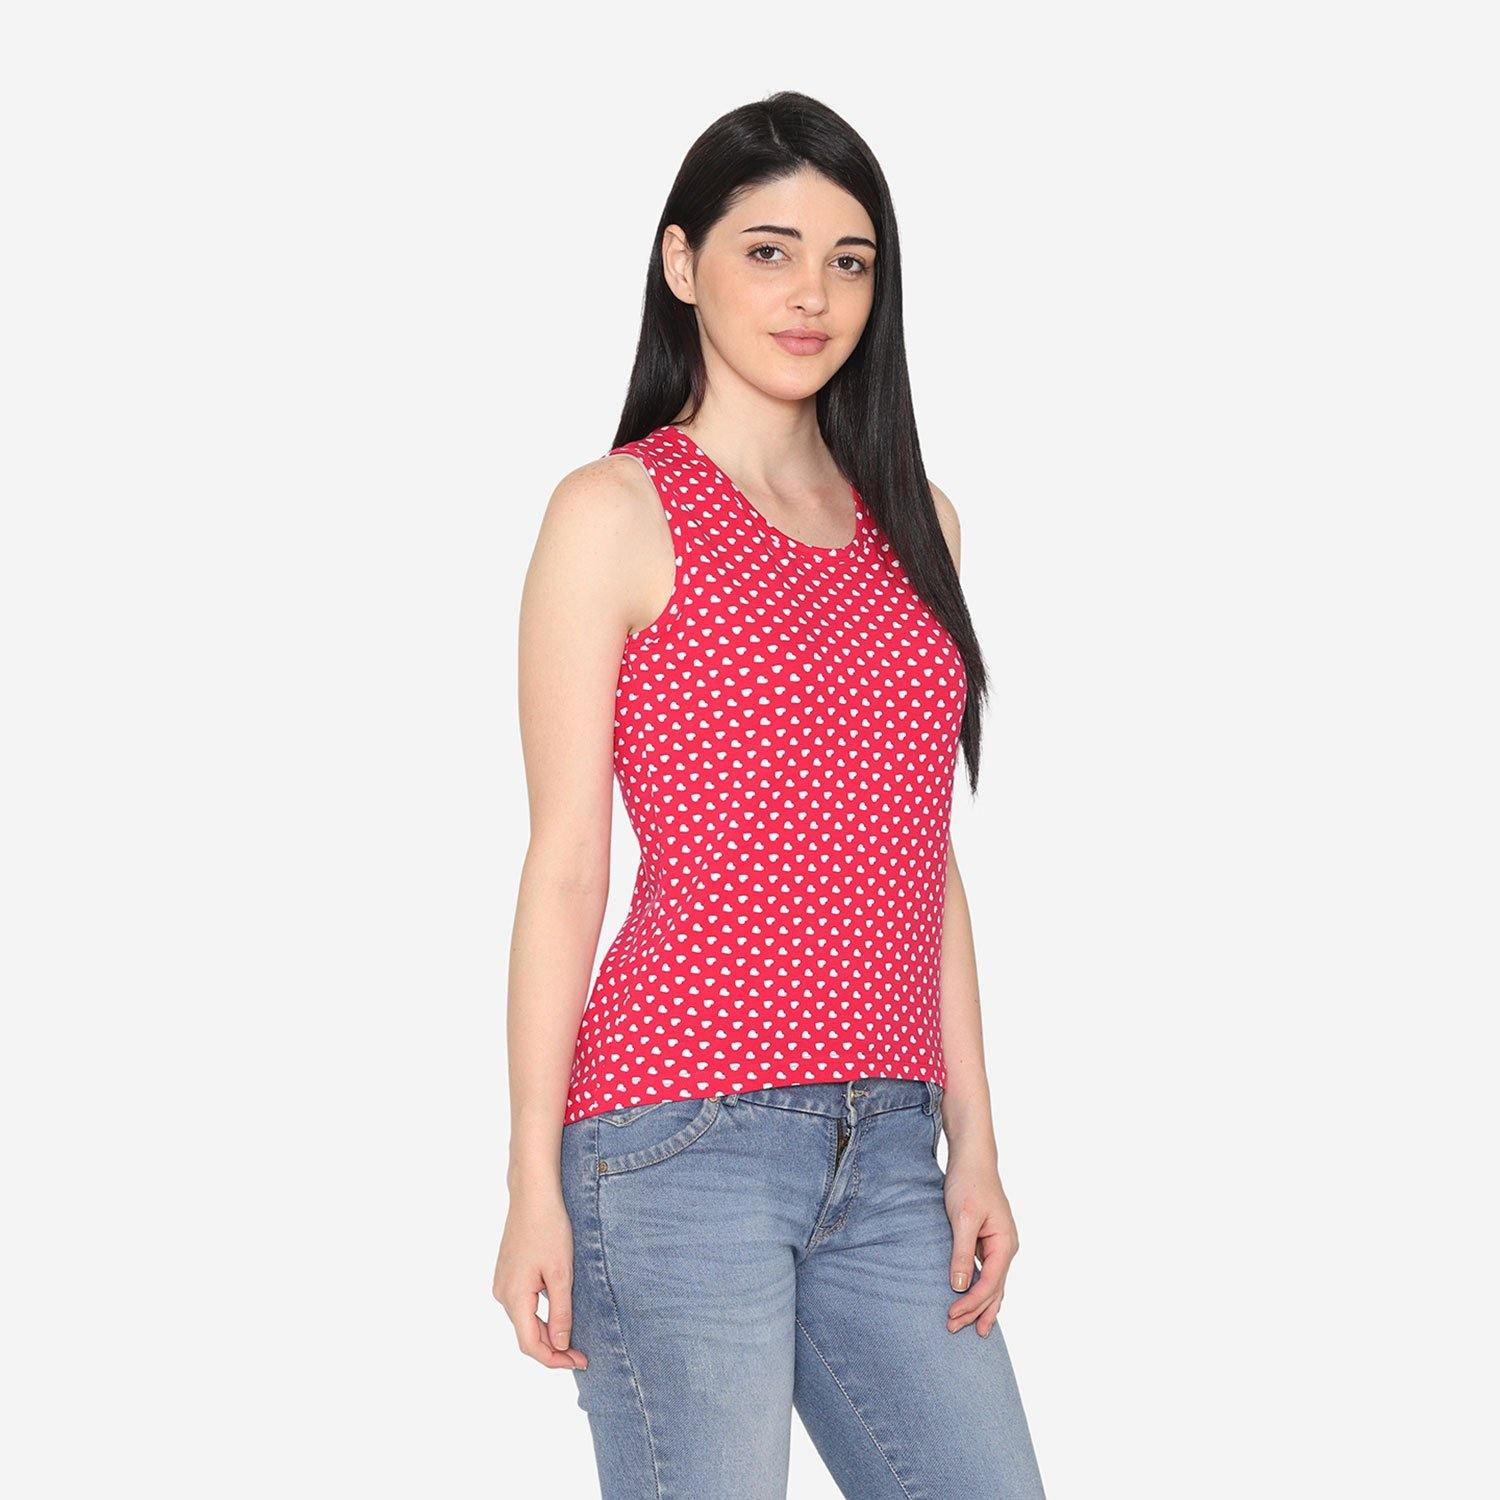 Women's Casual Sleeveless T-Shirt For Women